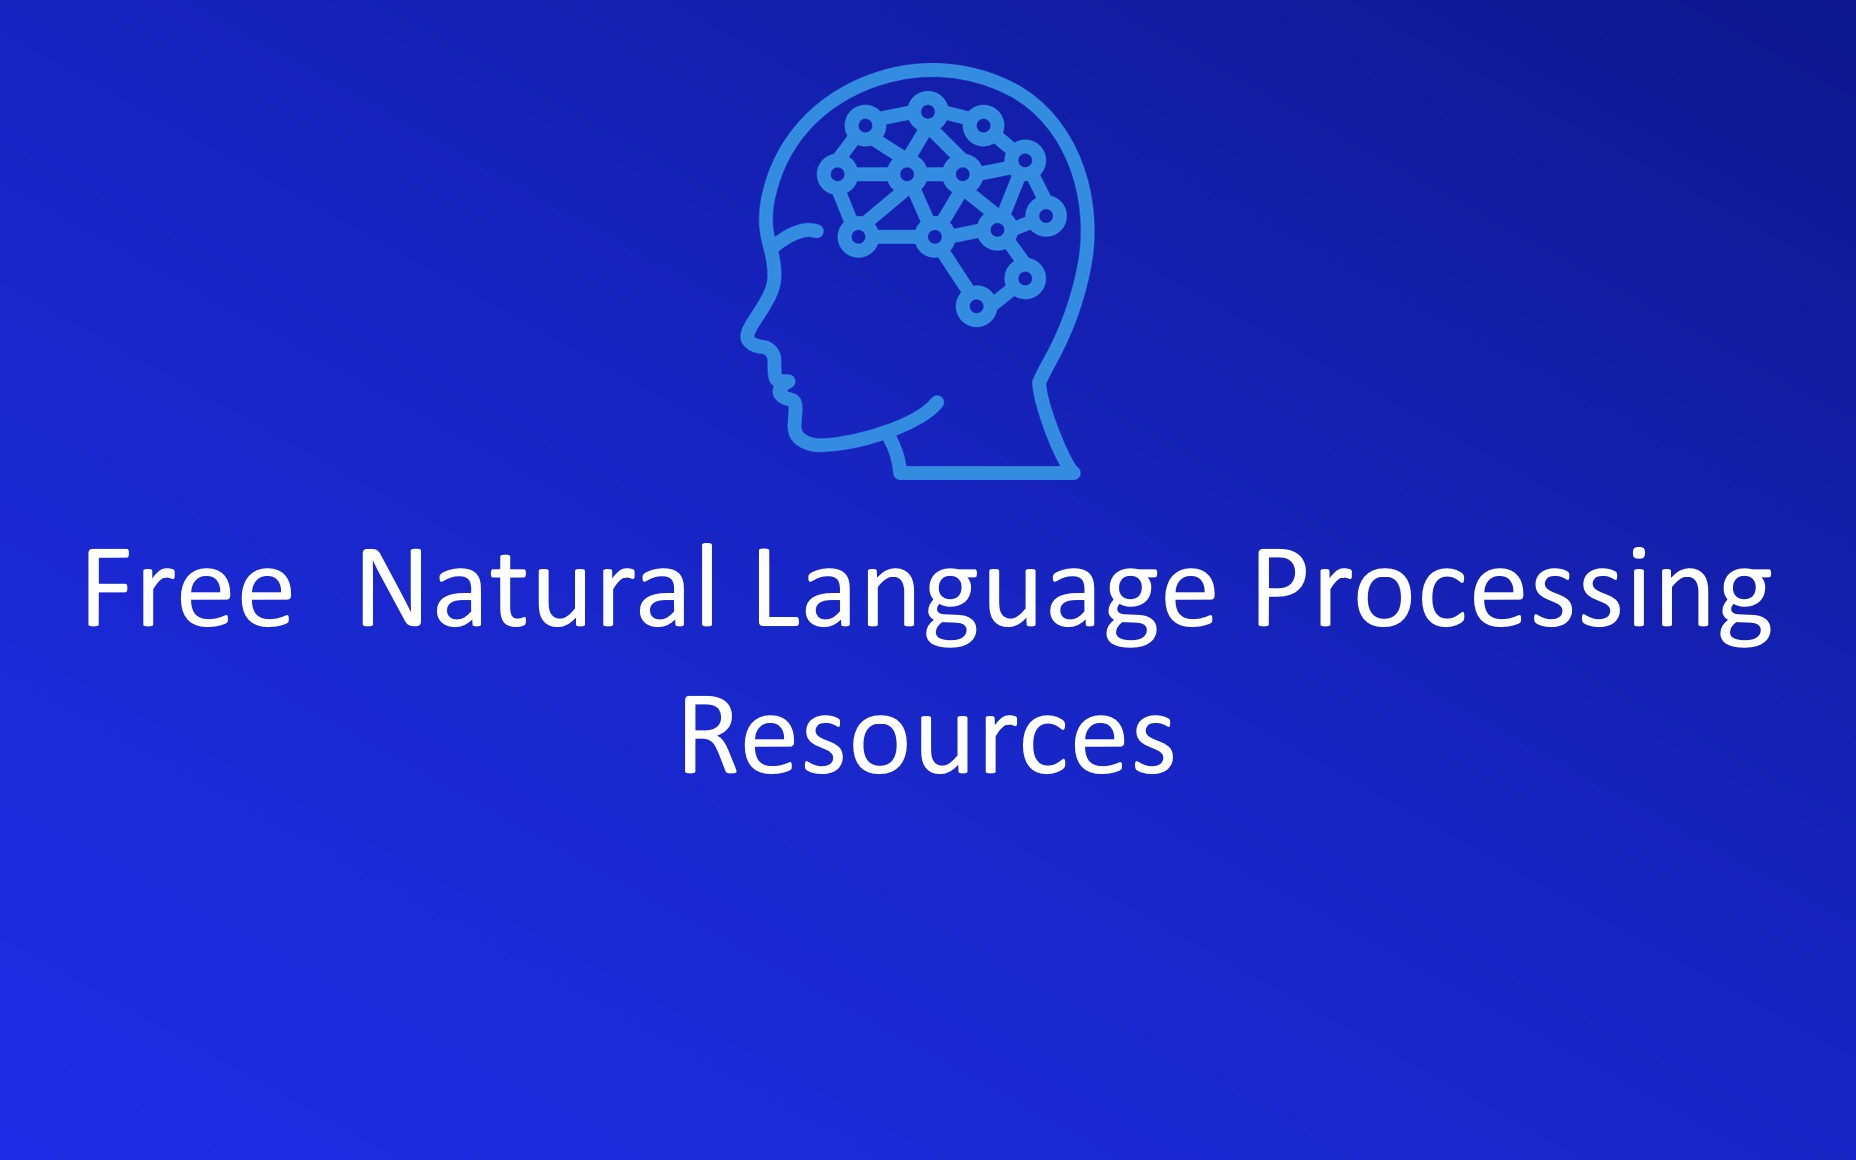 List of free resources to learn Natural Language Processing - DZone AI